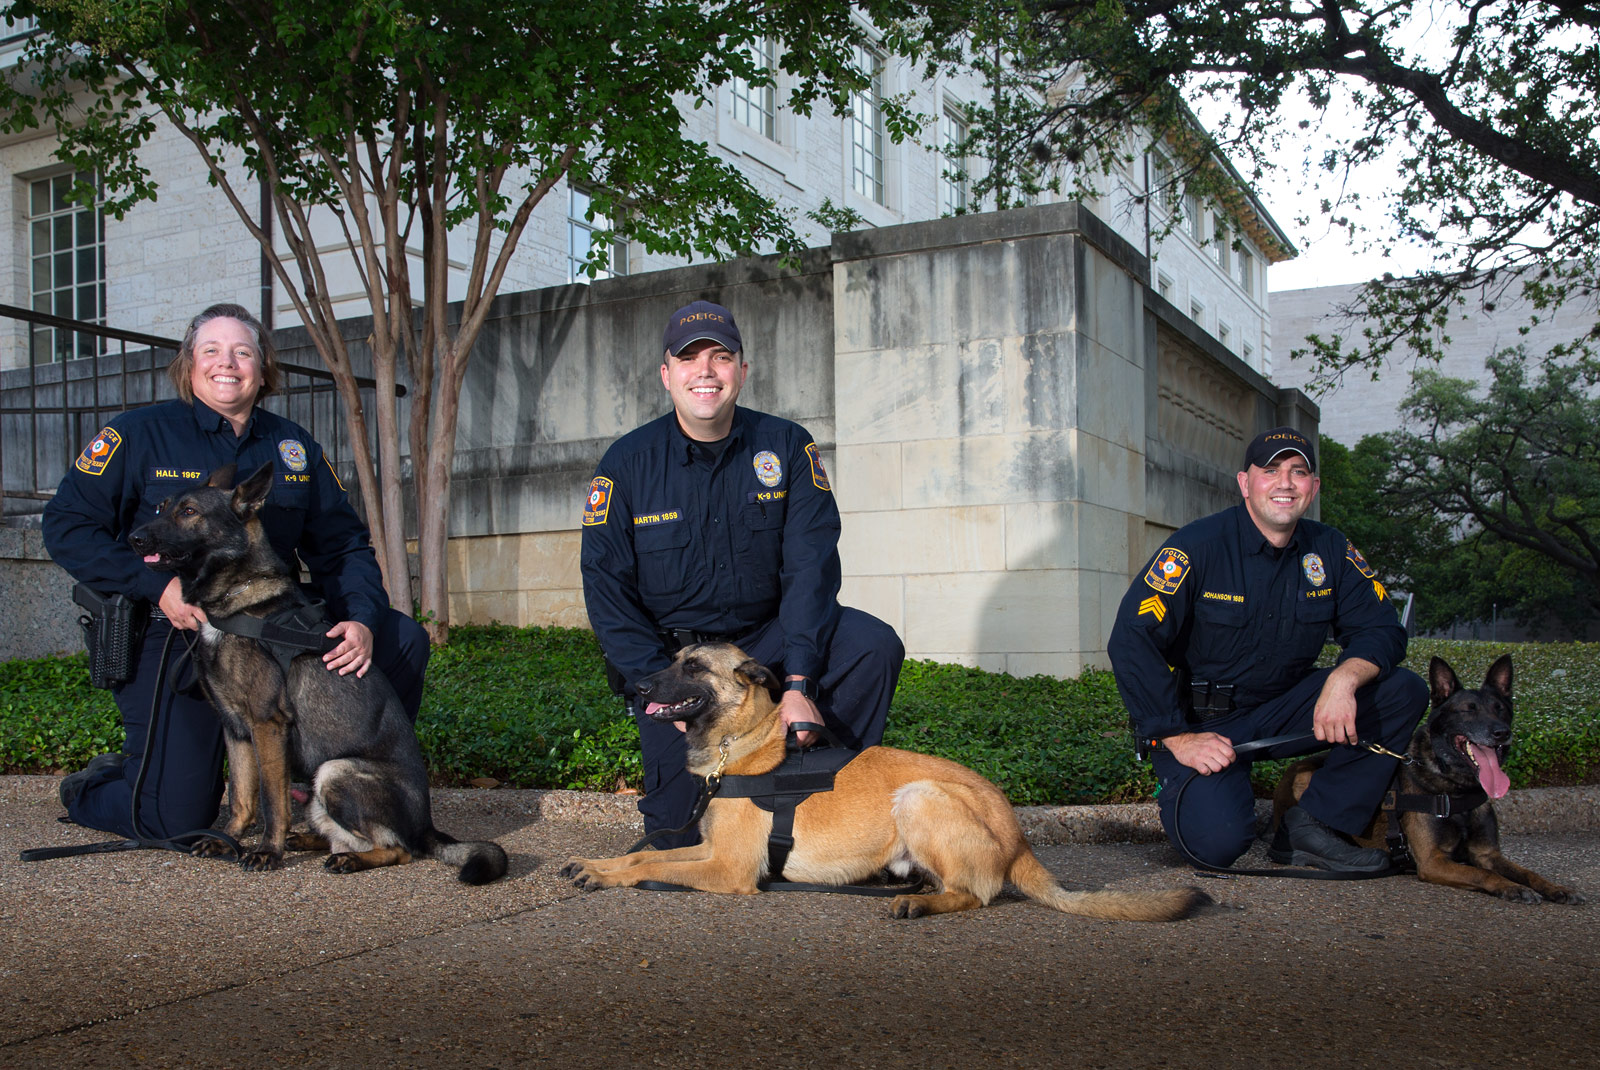 K9 Team - 3 officers and their faithful german shepards